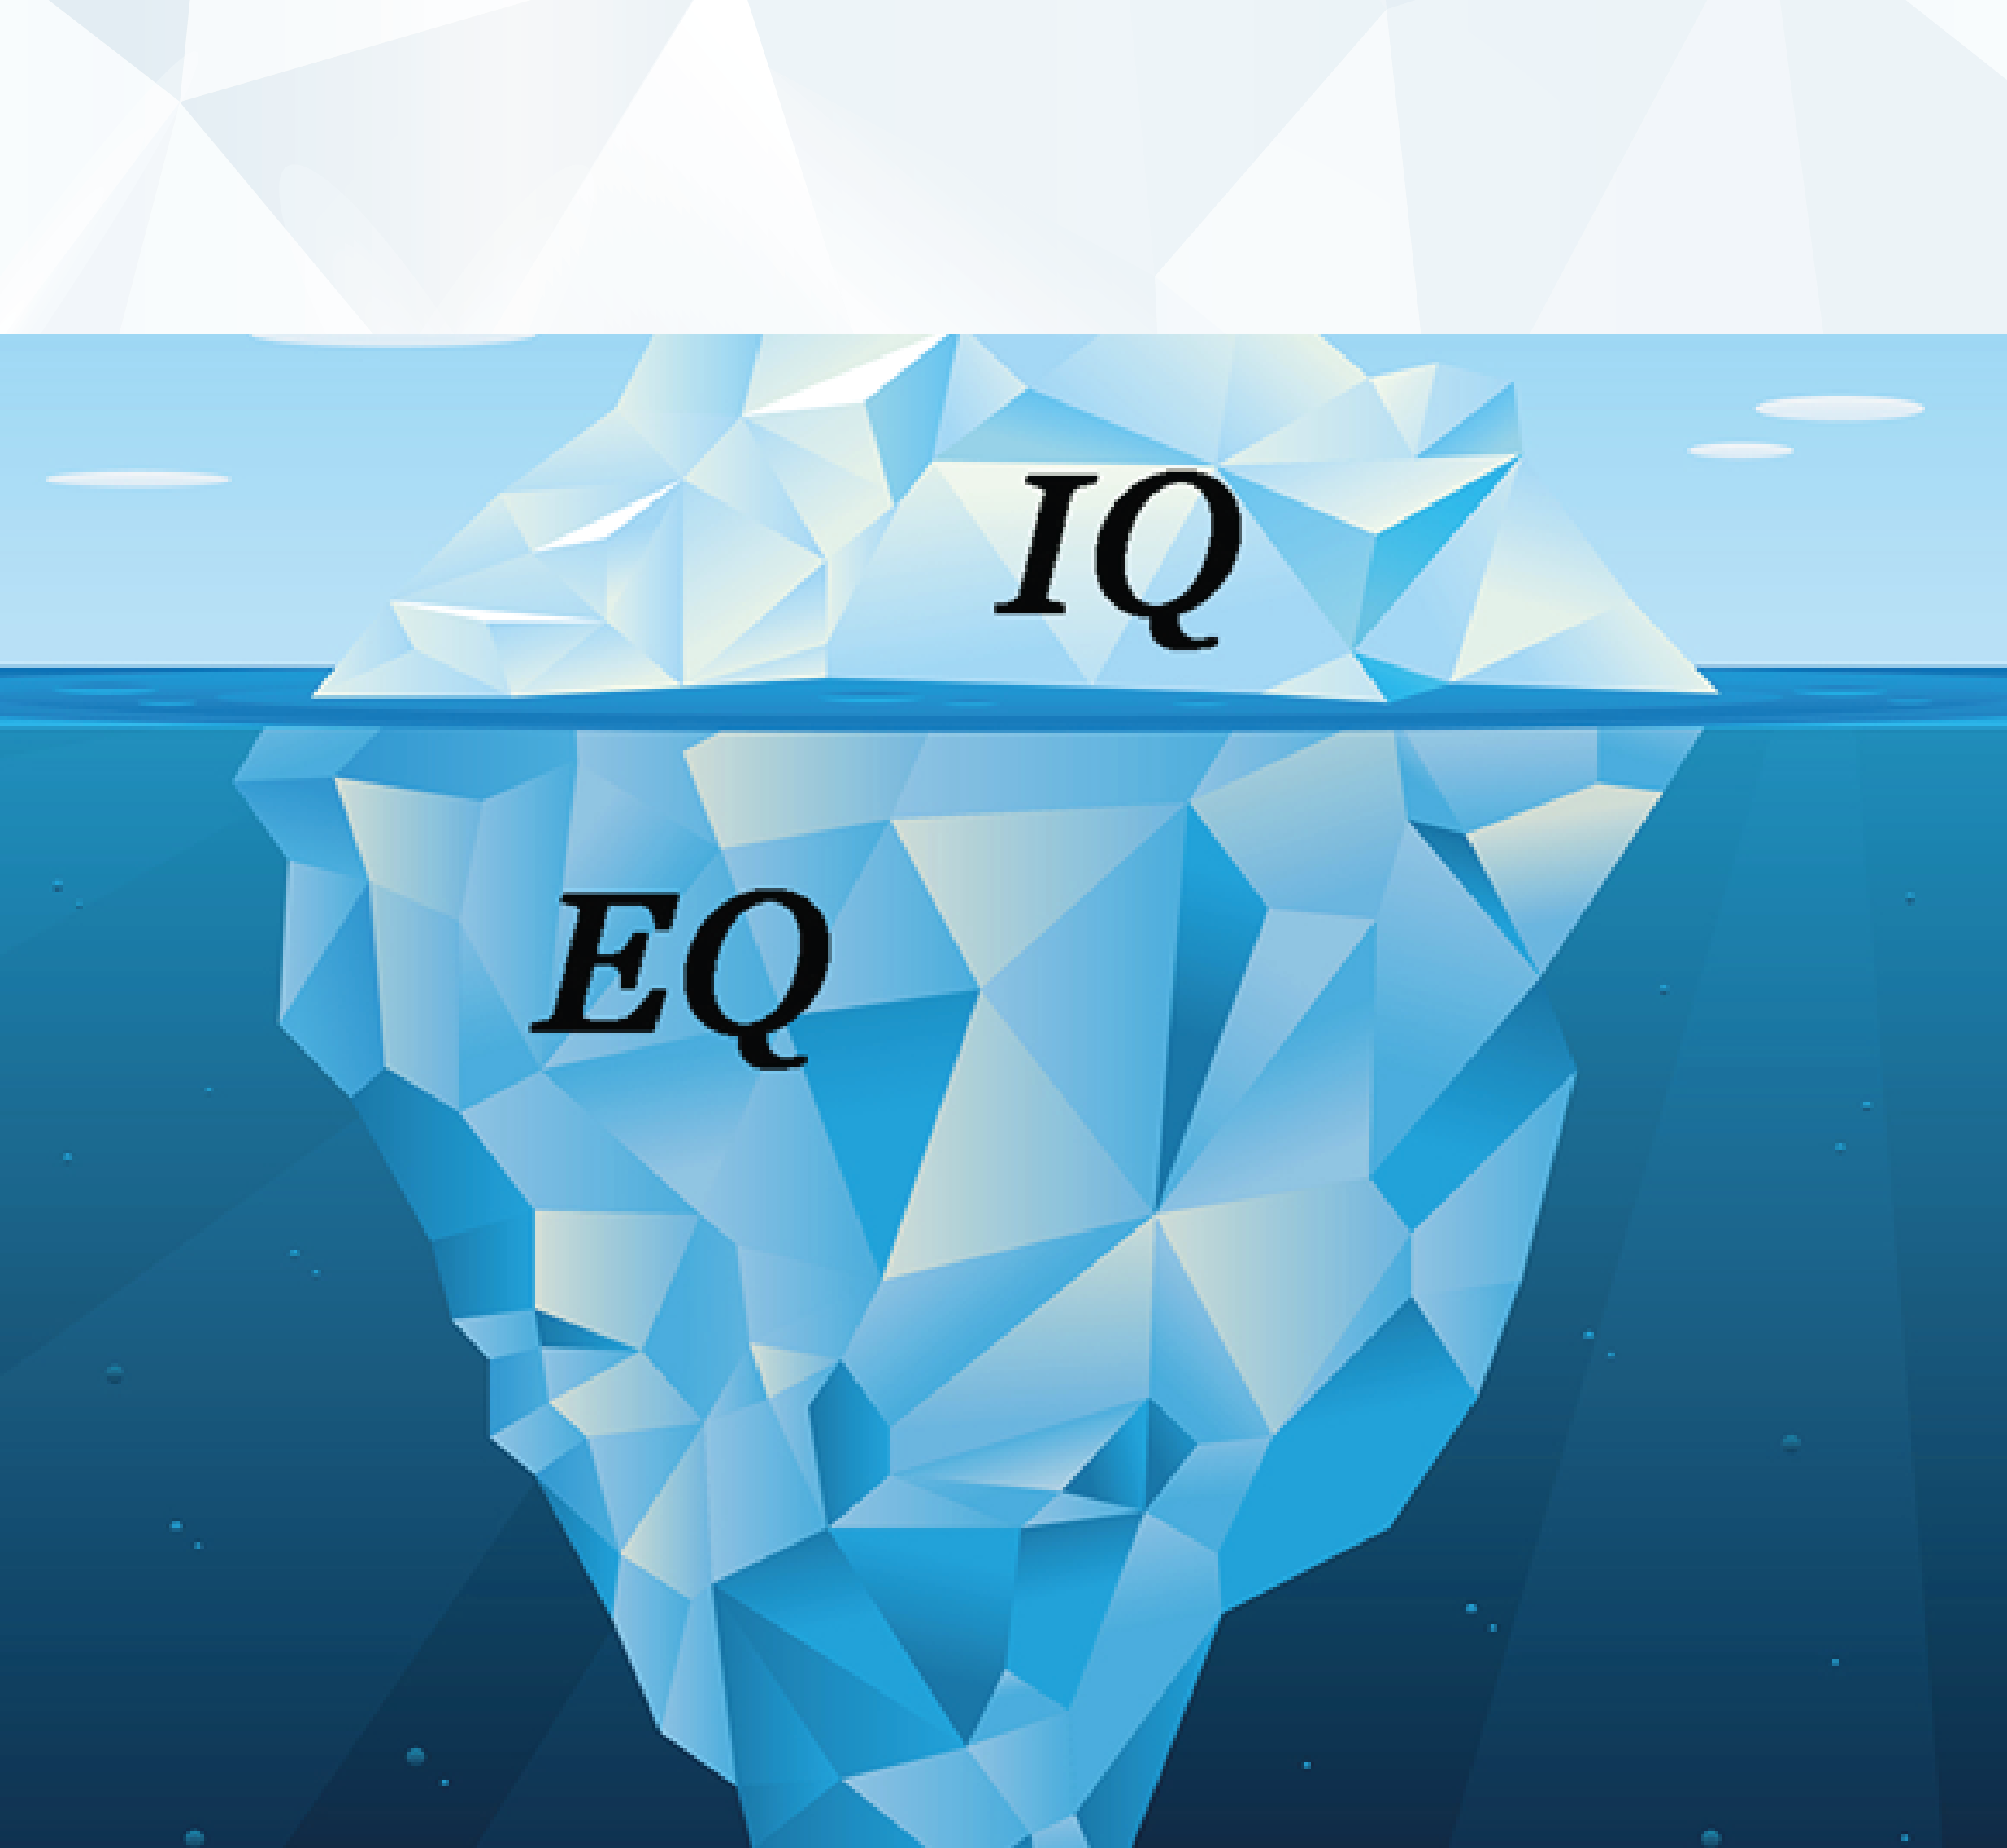 pin by ingrid miera on awaytothinkdifferent explore iceberg theory iceberg principle and more